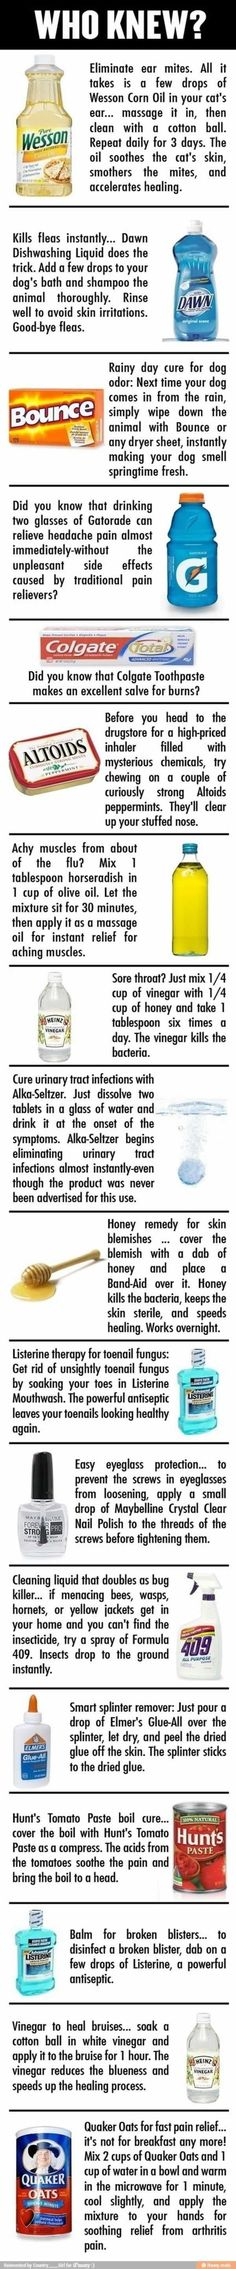 Great tricks! Gatorade for headaches, honey for blemishes, vinegar for bruises, etc